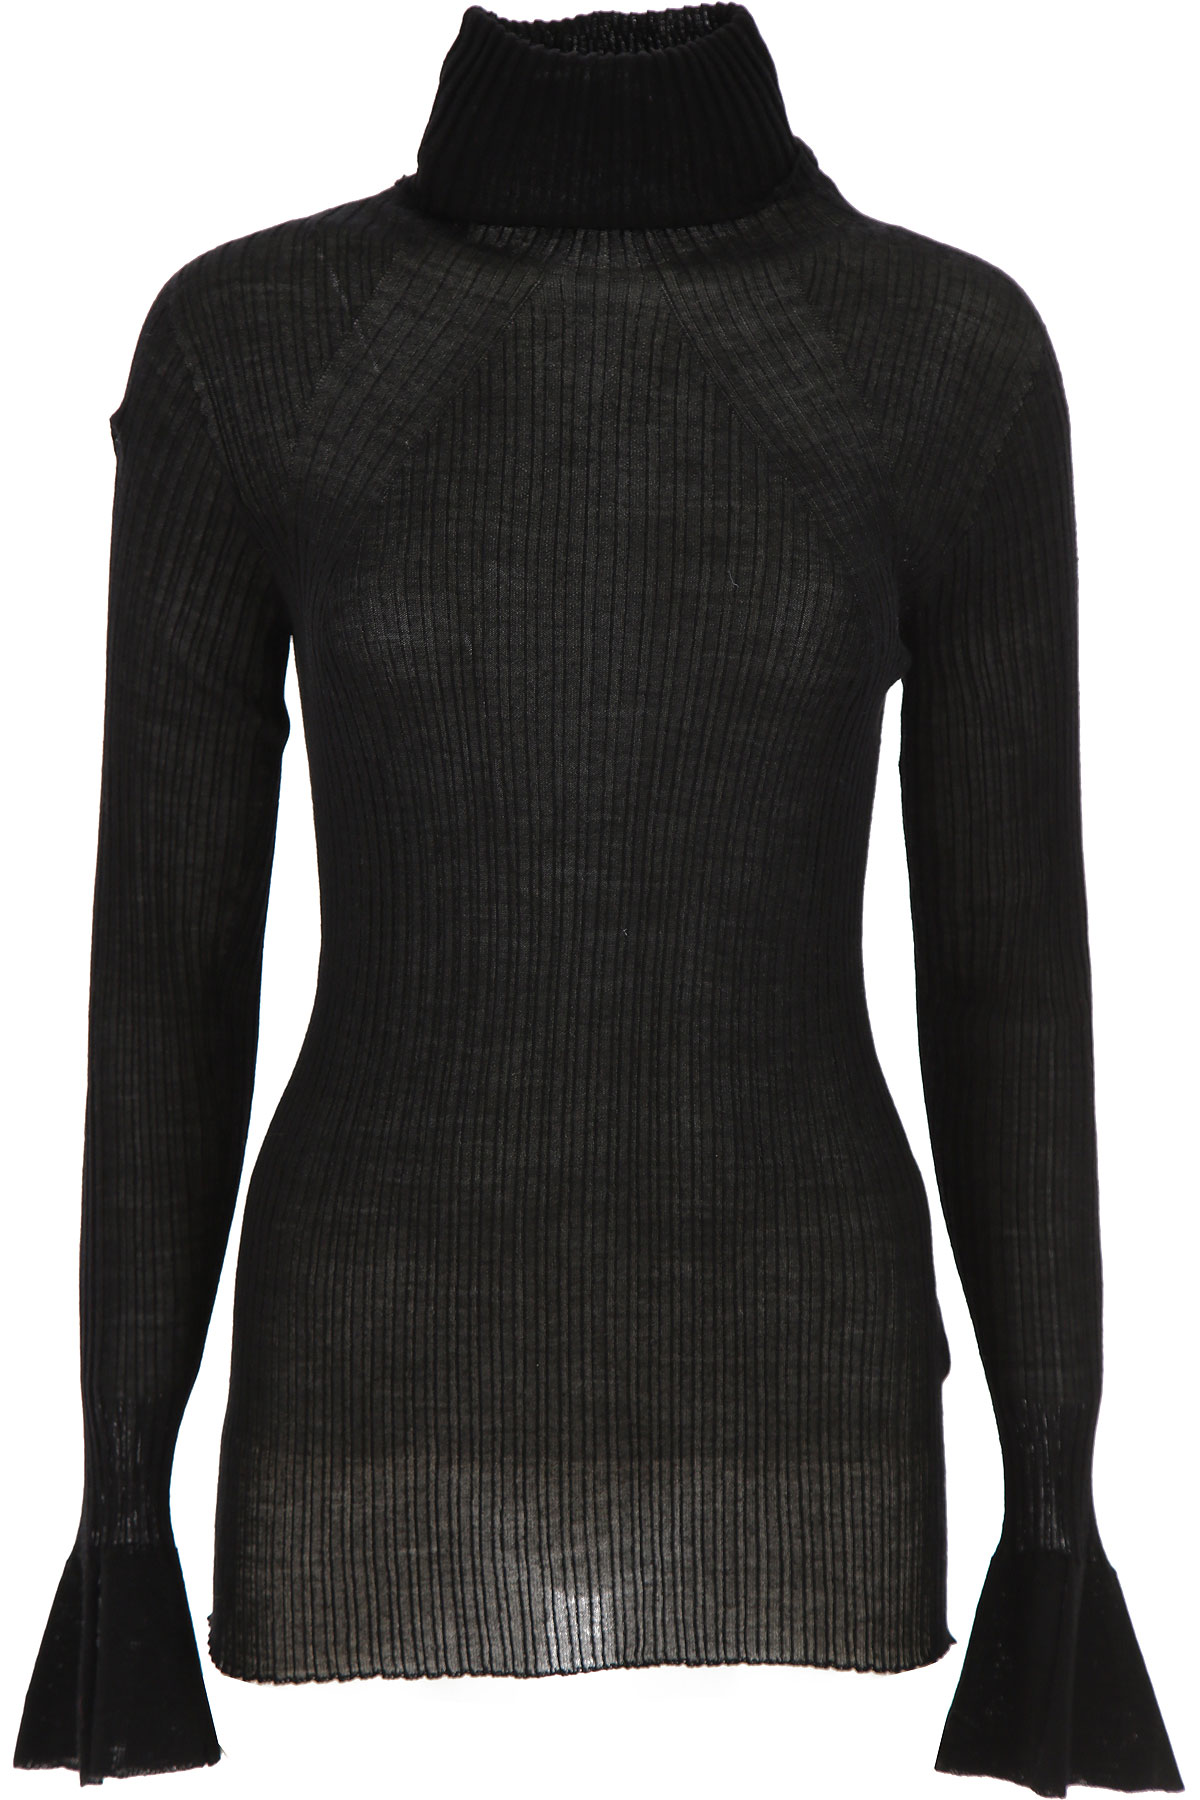 Liviana Conti Sweater for Women Jumper On Sale, Black, Wool, 2019, 4 6 8